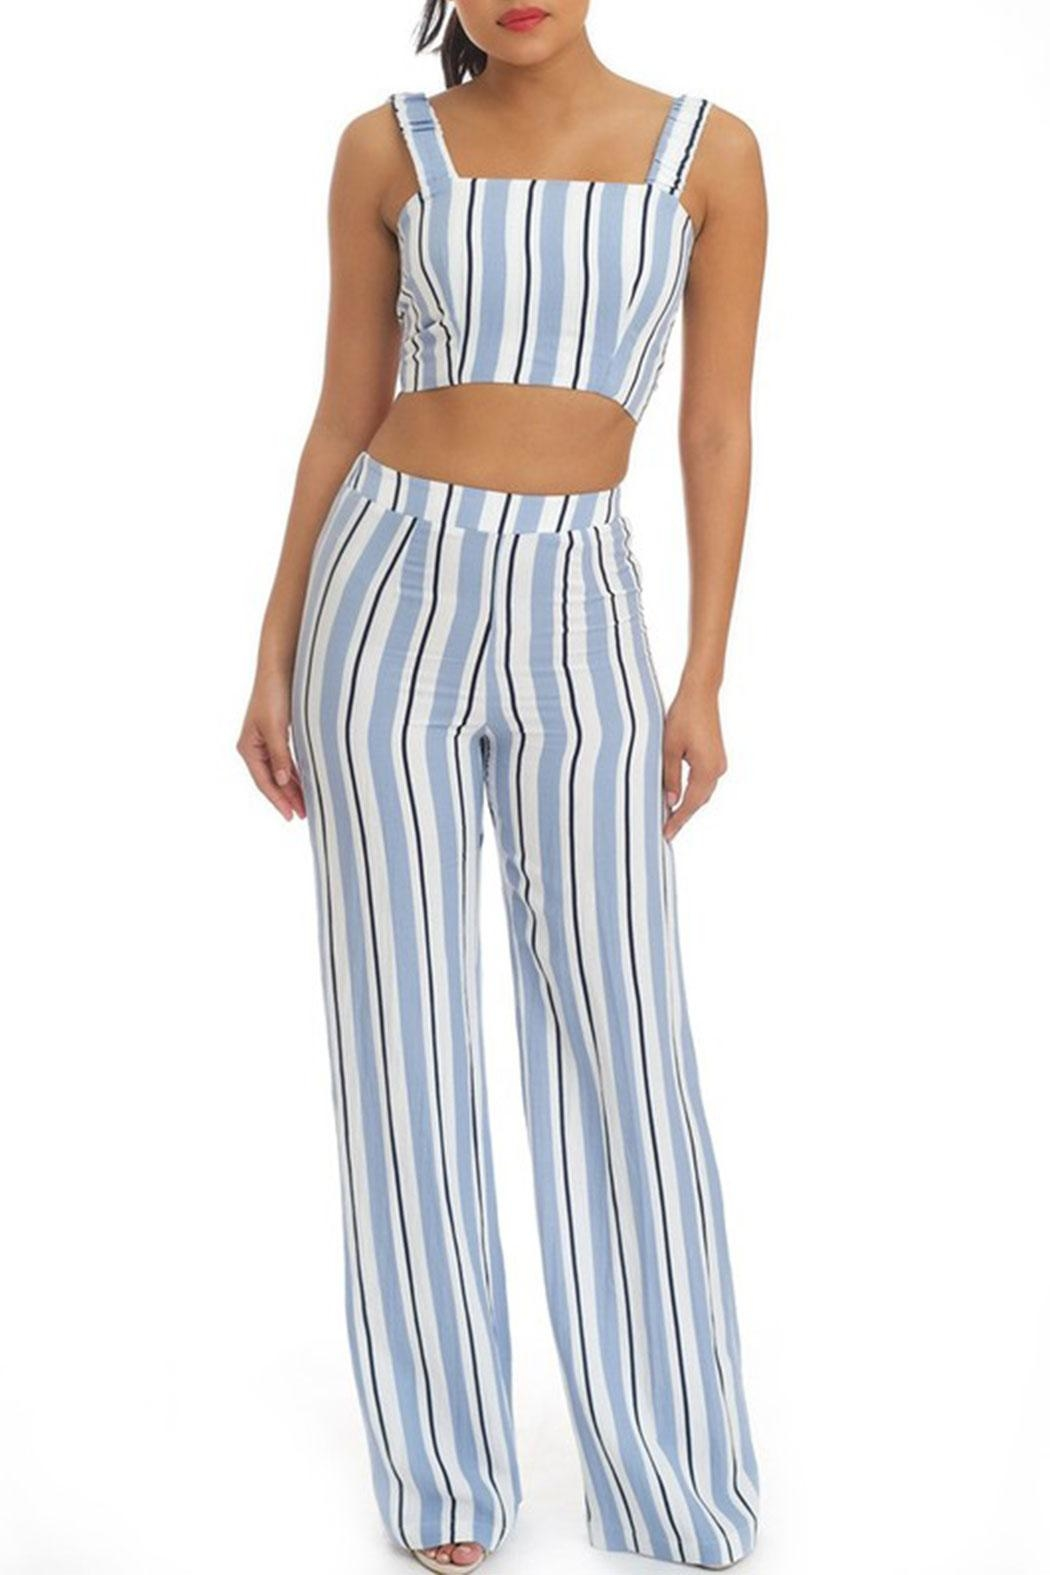 luxxel Stripe Pant Set - Front Cropped Image